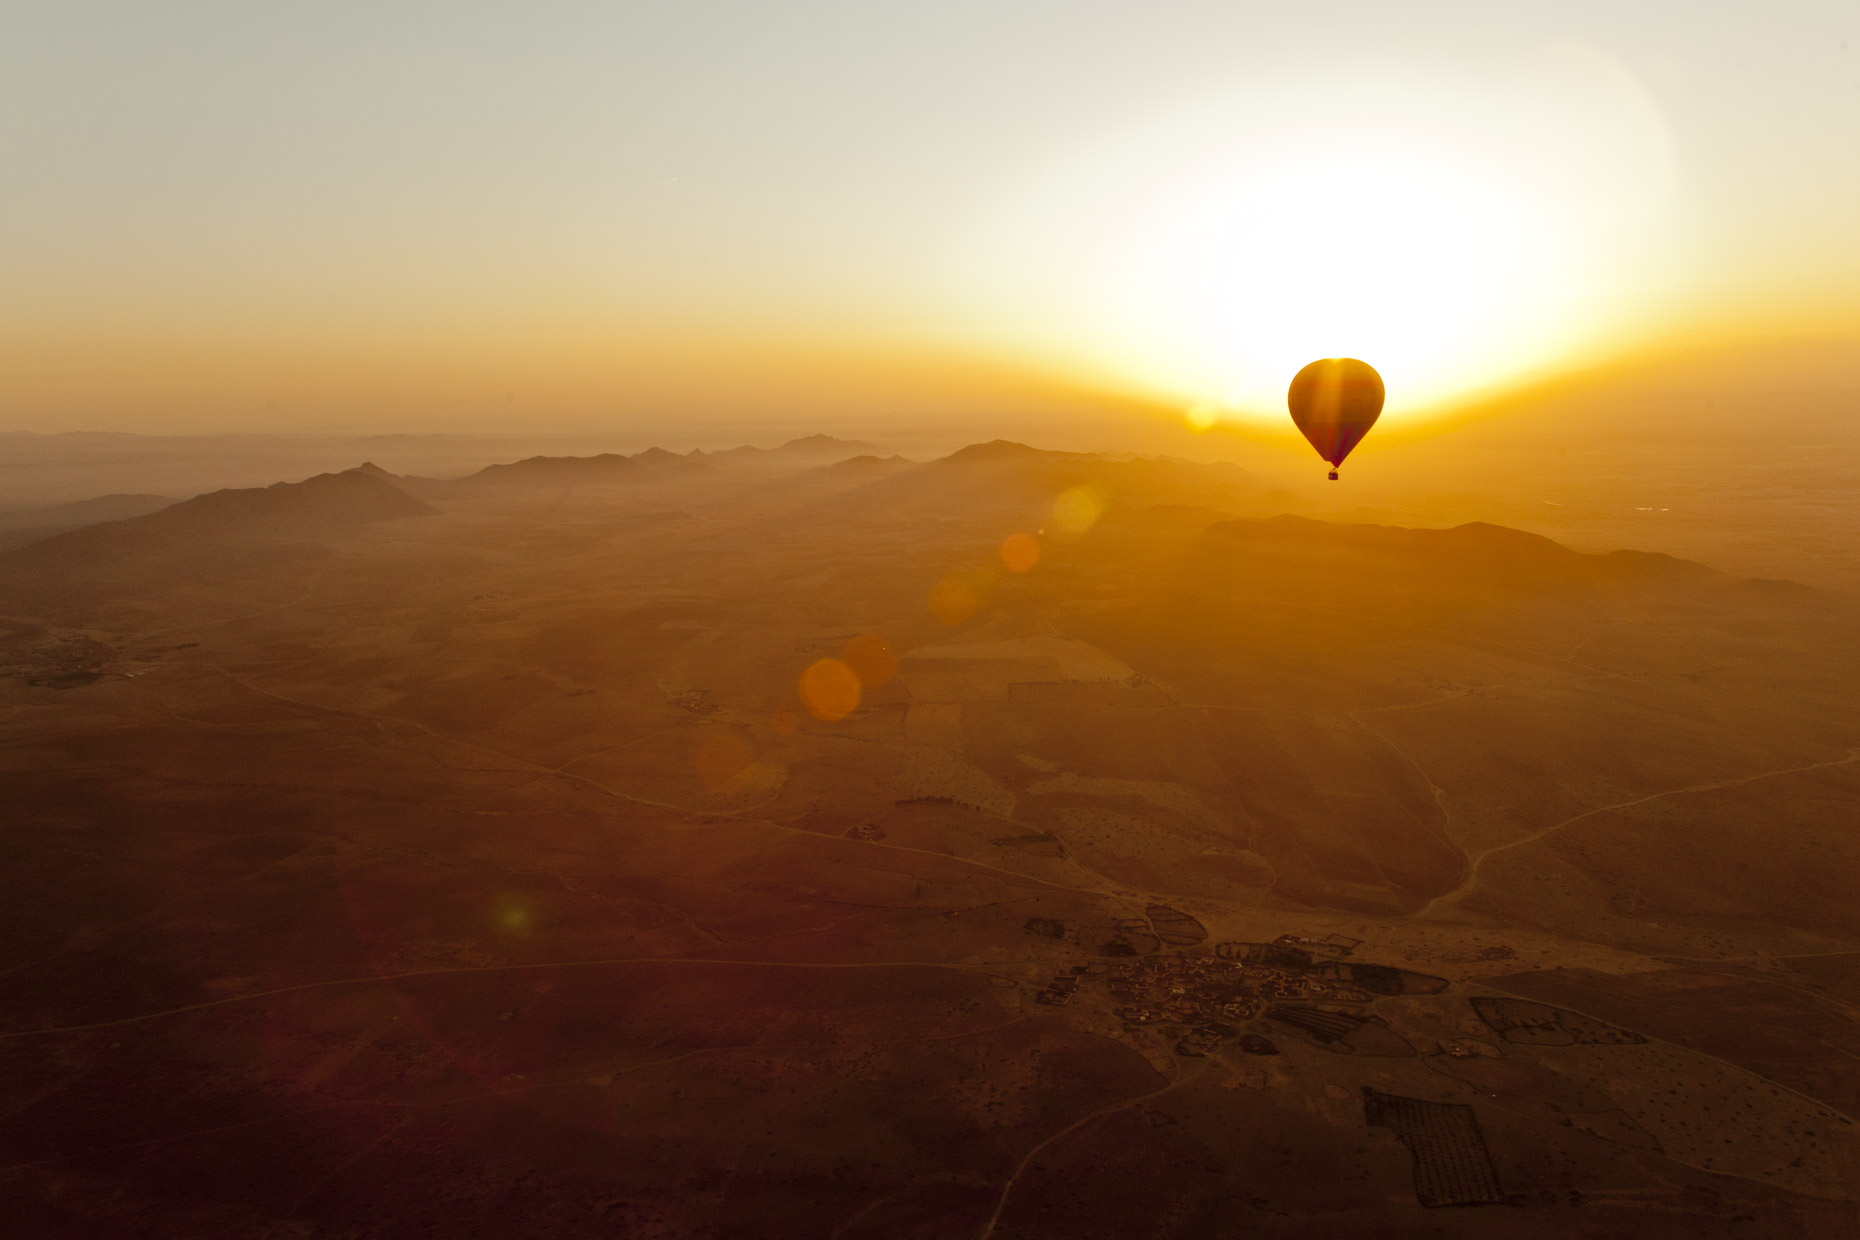 Inti St Clair photo of hot air balloons at sunrise over Moroccan desert